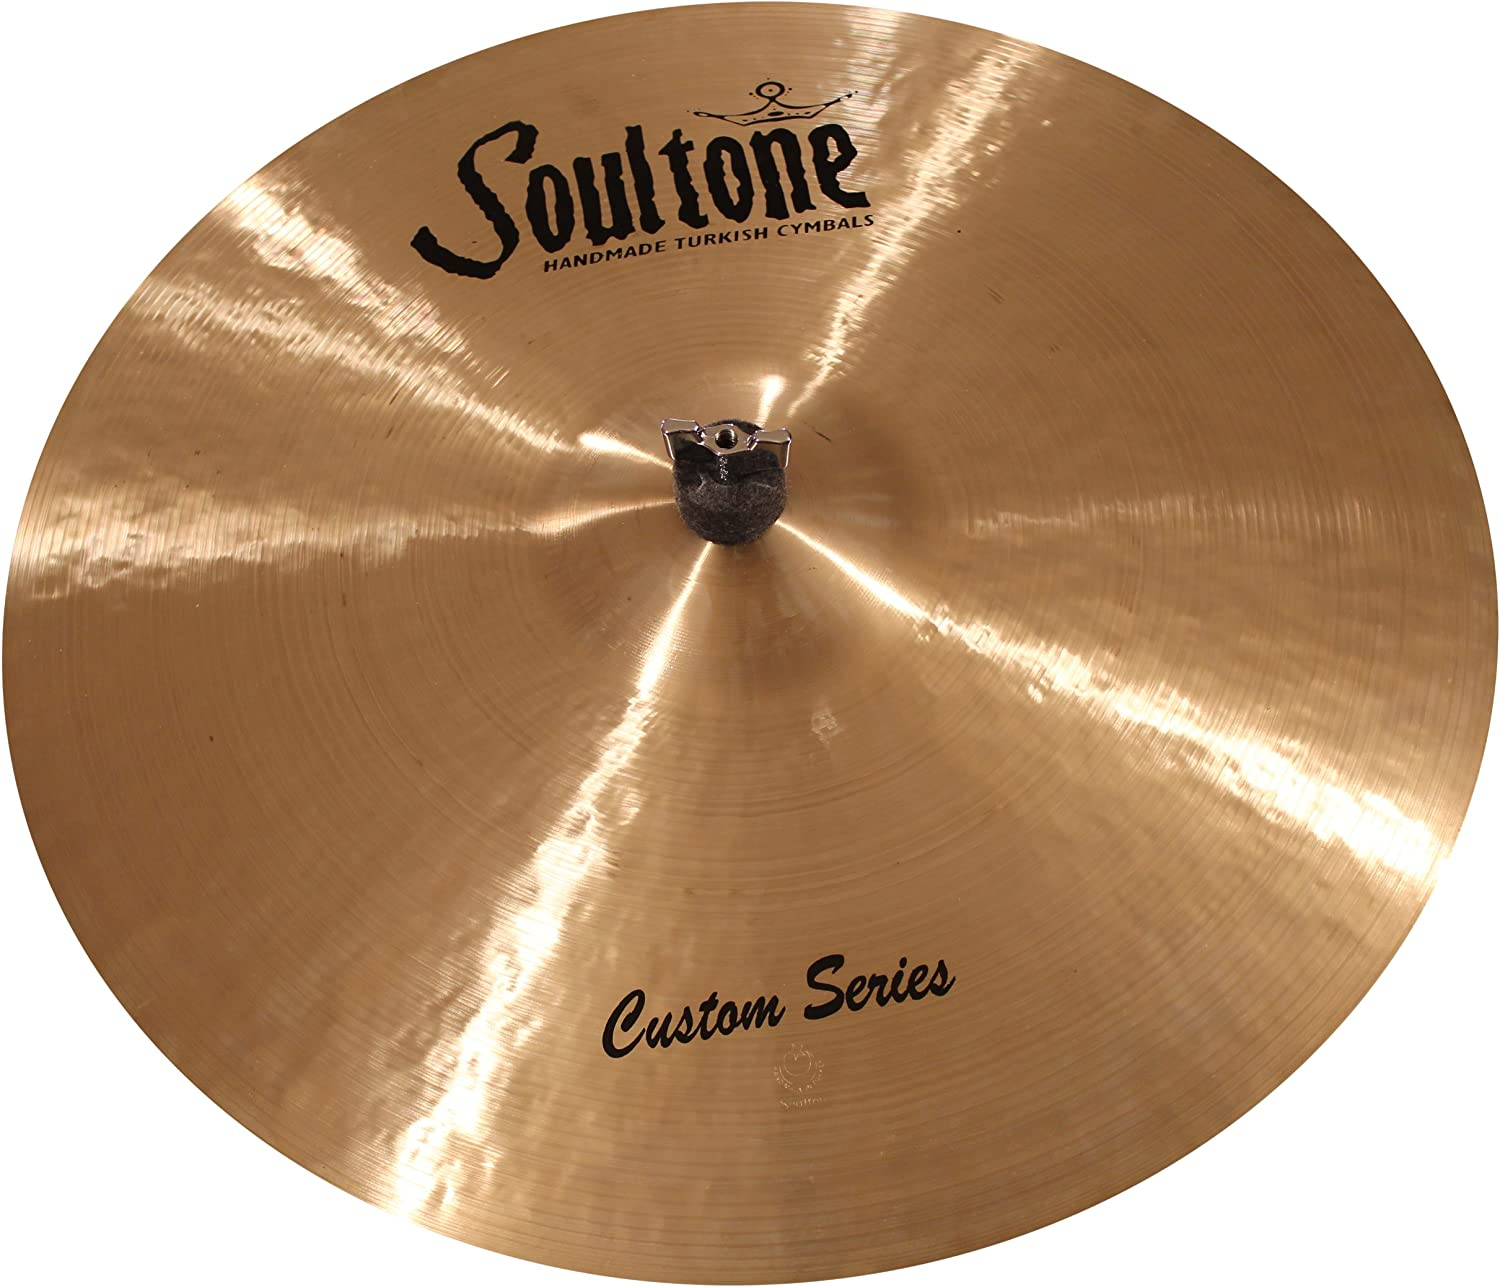 Soultone Cymbals New Shipping Free CST-CRR21-21